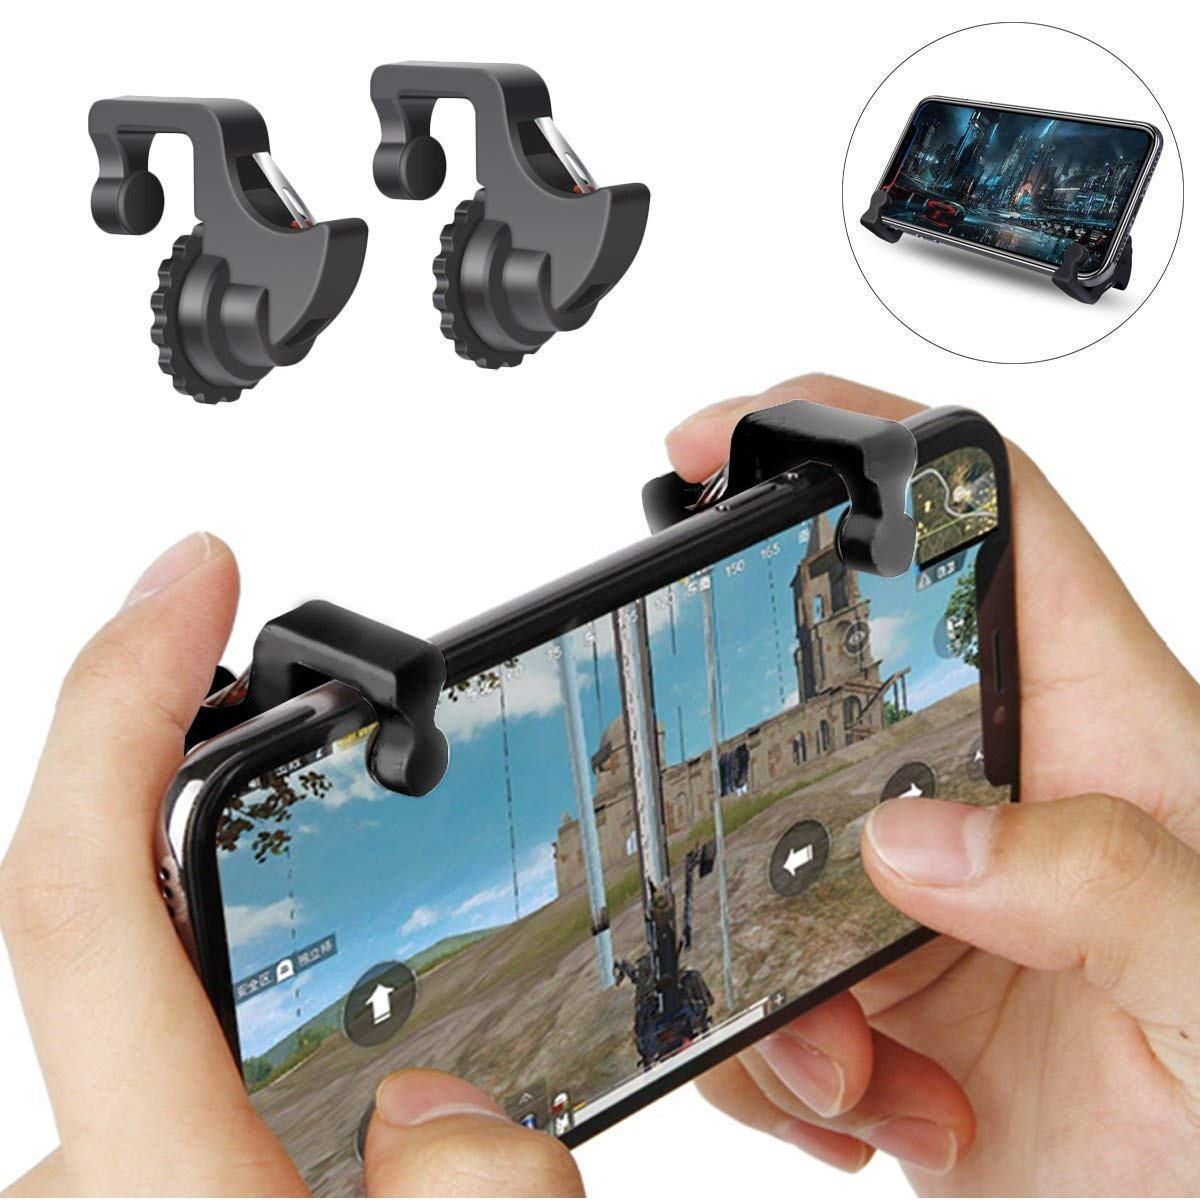 Freckle PUBG Mobile Game Controller, Gaming Trigger Fire Button Aim Key With Mini Magnetic Car Dashboard Mount Mobile Holder.